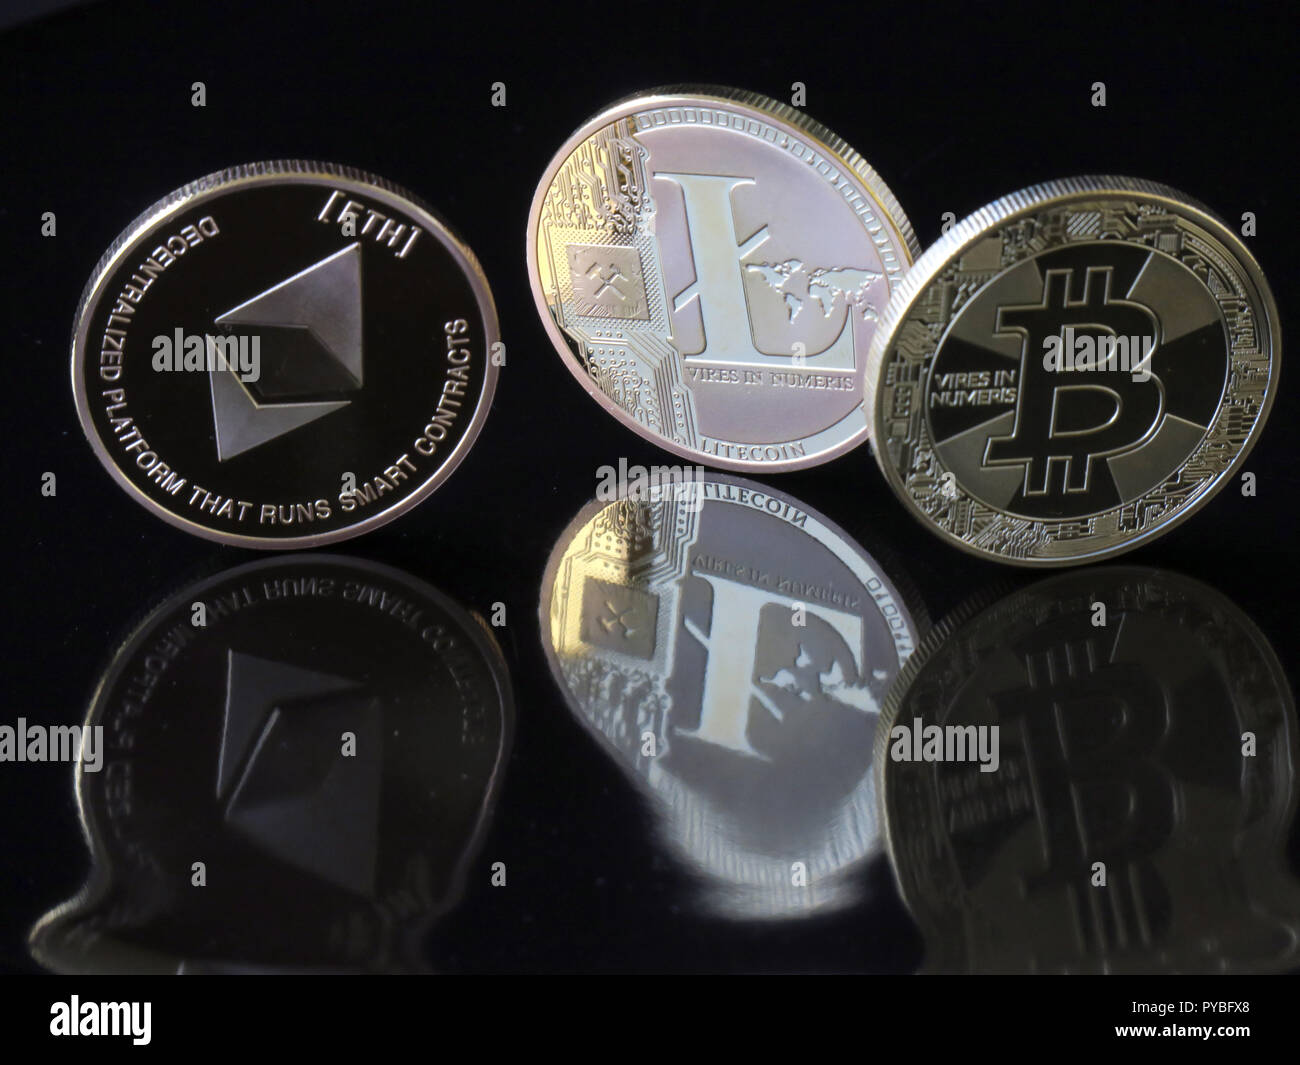 """30 August 2018, Berlin: 30 August 2018, Germany, Berlin: A (L-R) Etherum Classic coin with the imprint """"ETH"""", a Lite coin and a Bitcoin coin with the imprint """"Vires in Numeris"""" (strength in numbers) are reflected distorted in a black surface. The digital currency Bitcoin has been around for ten years now and is based on blockchains (chains of data blocks), in which Bitcoin units are generated in mathematical operations on the computer. After Bitcoin, the Internet currency Etherum is the world's second largest virtual payment method. Photo: Soeren Stache/dpa-Zentralbild/ZB Stock Photo"""